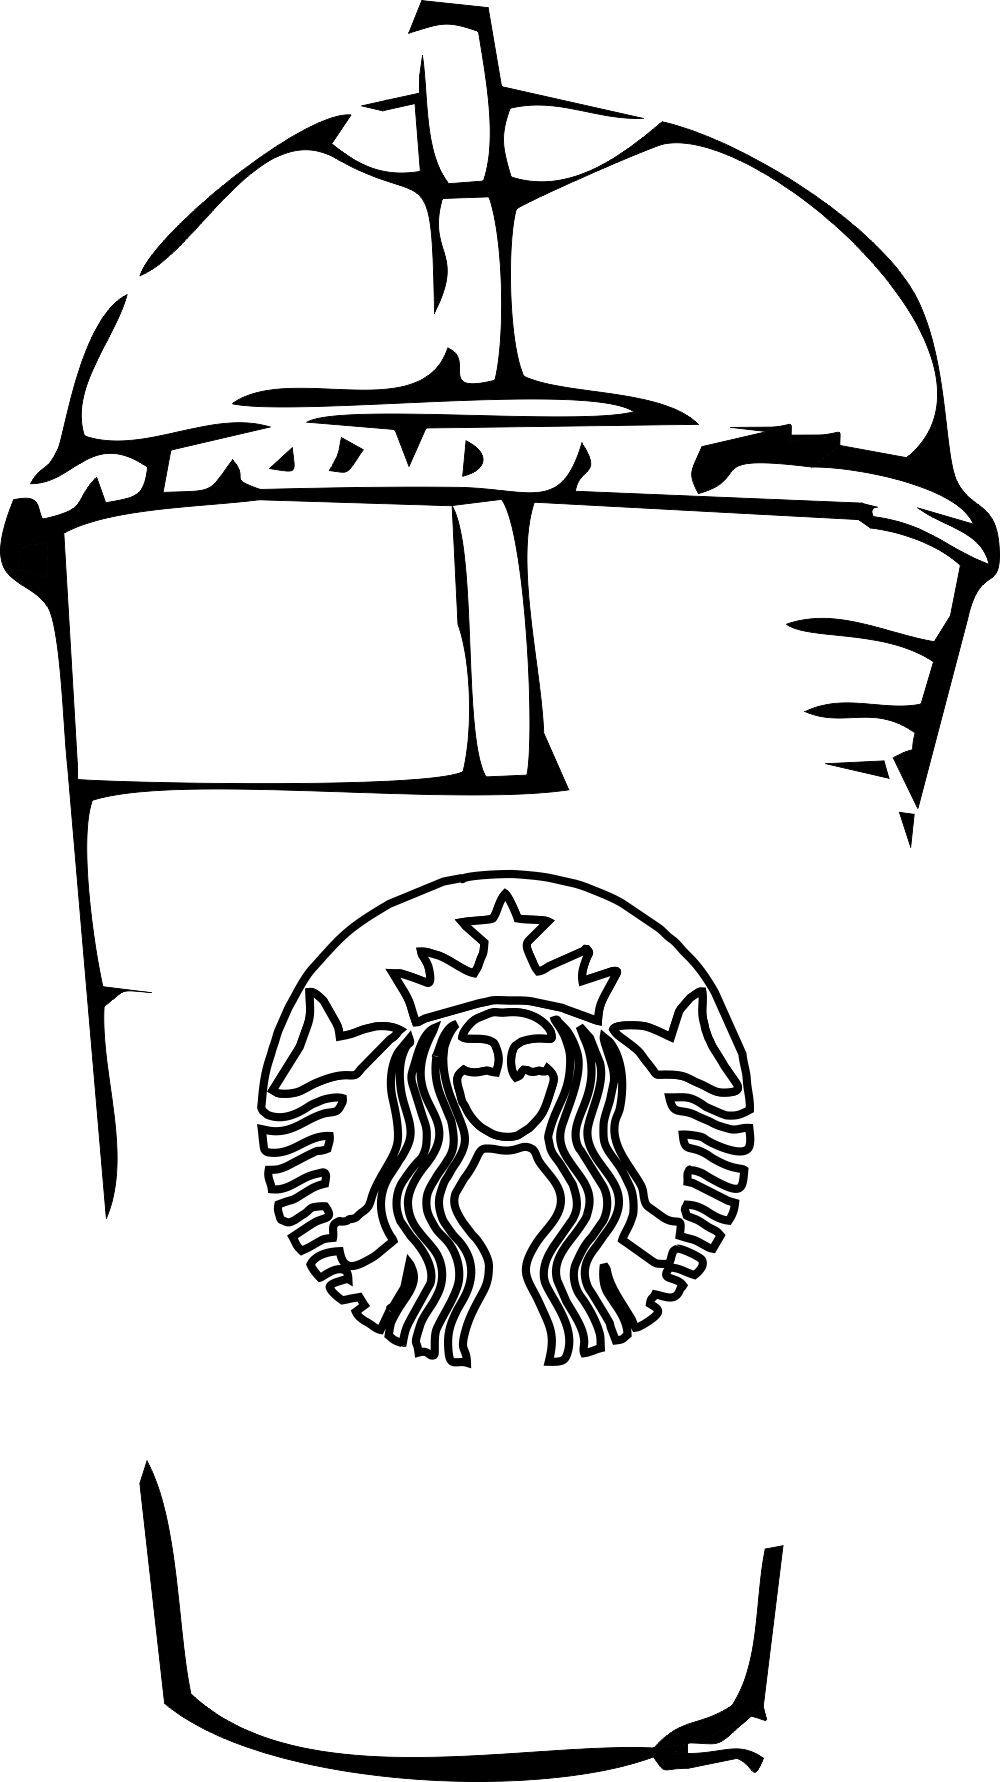 Starbucks Coloring Pages To Print Coloring Pages To Print Birthday Coloring Pages Cool Coloring Pages